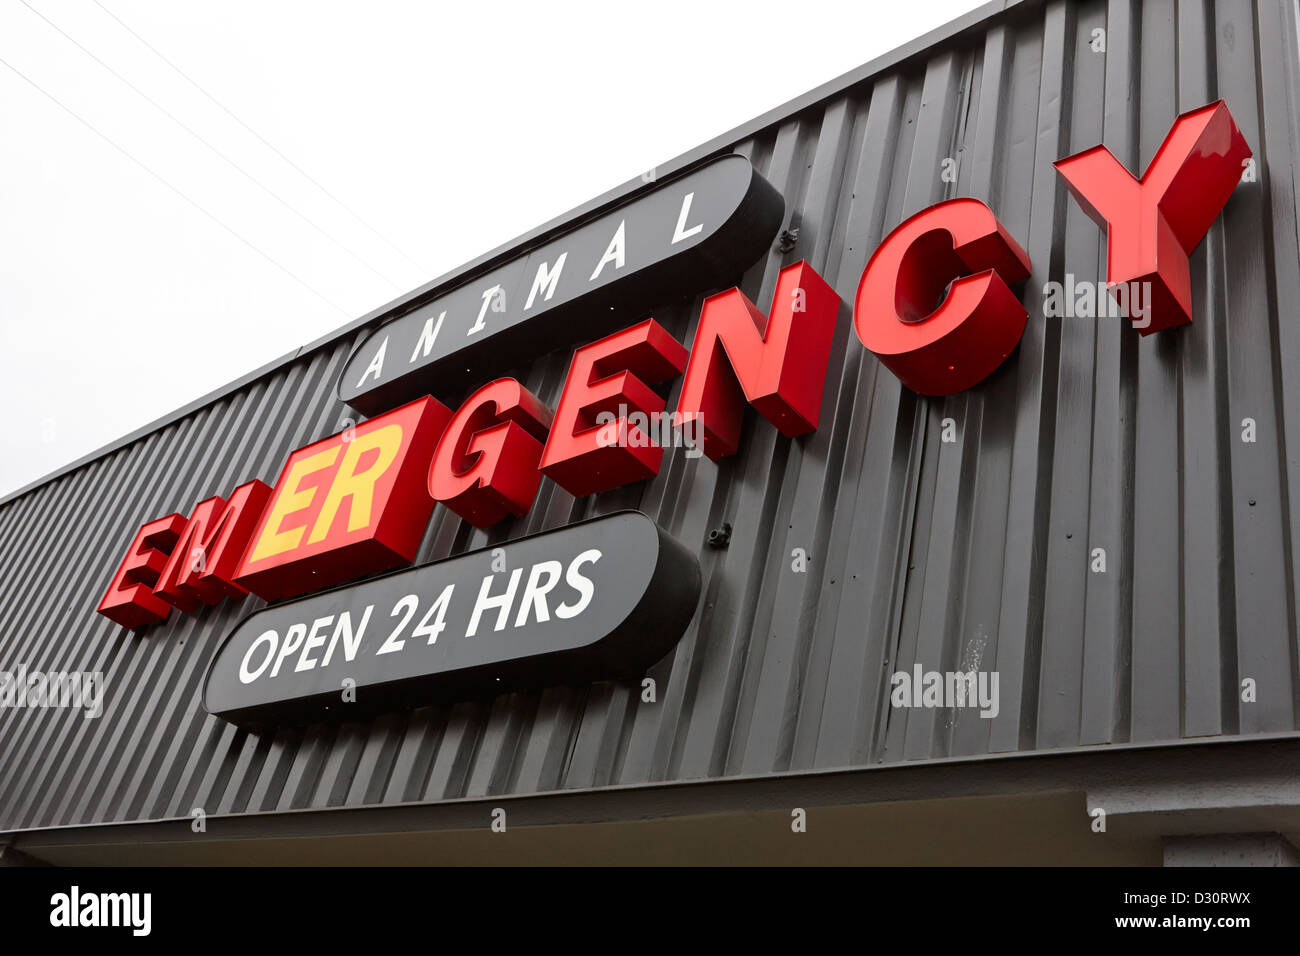 animal emergency er room vet vets open 24 hours sign Vancouver BC Canada - Stock Image